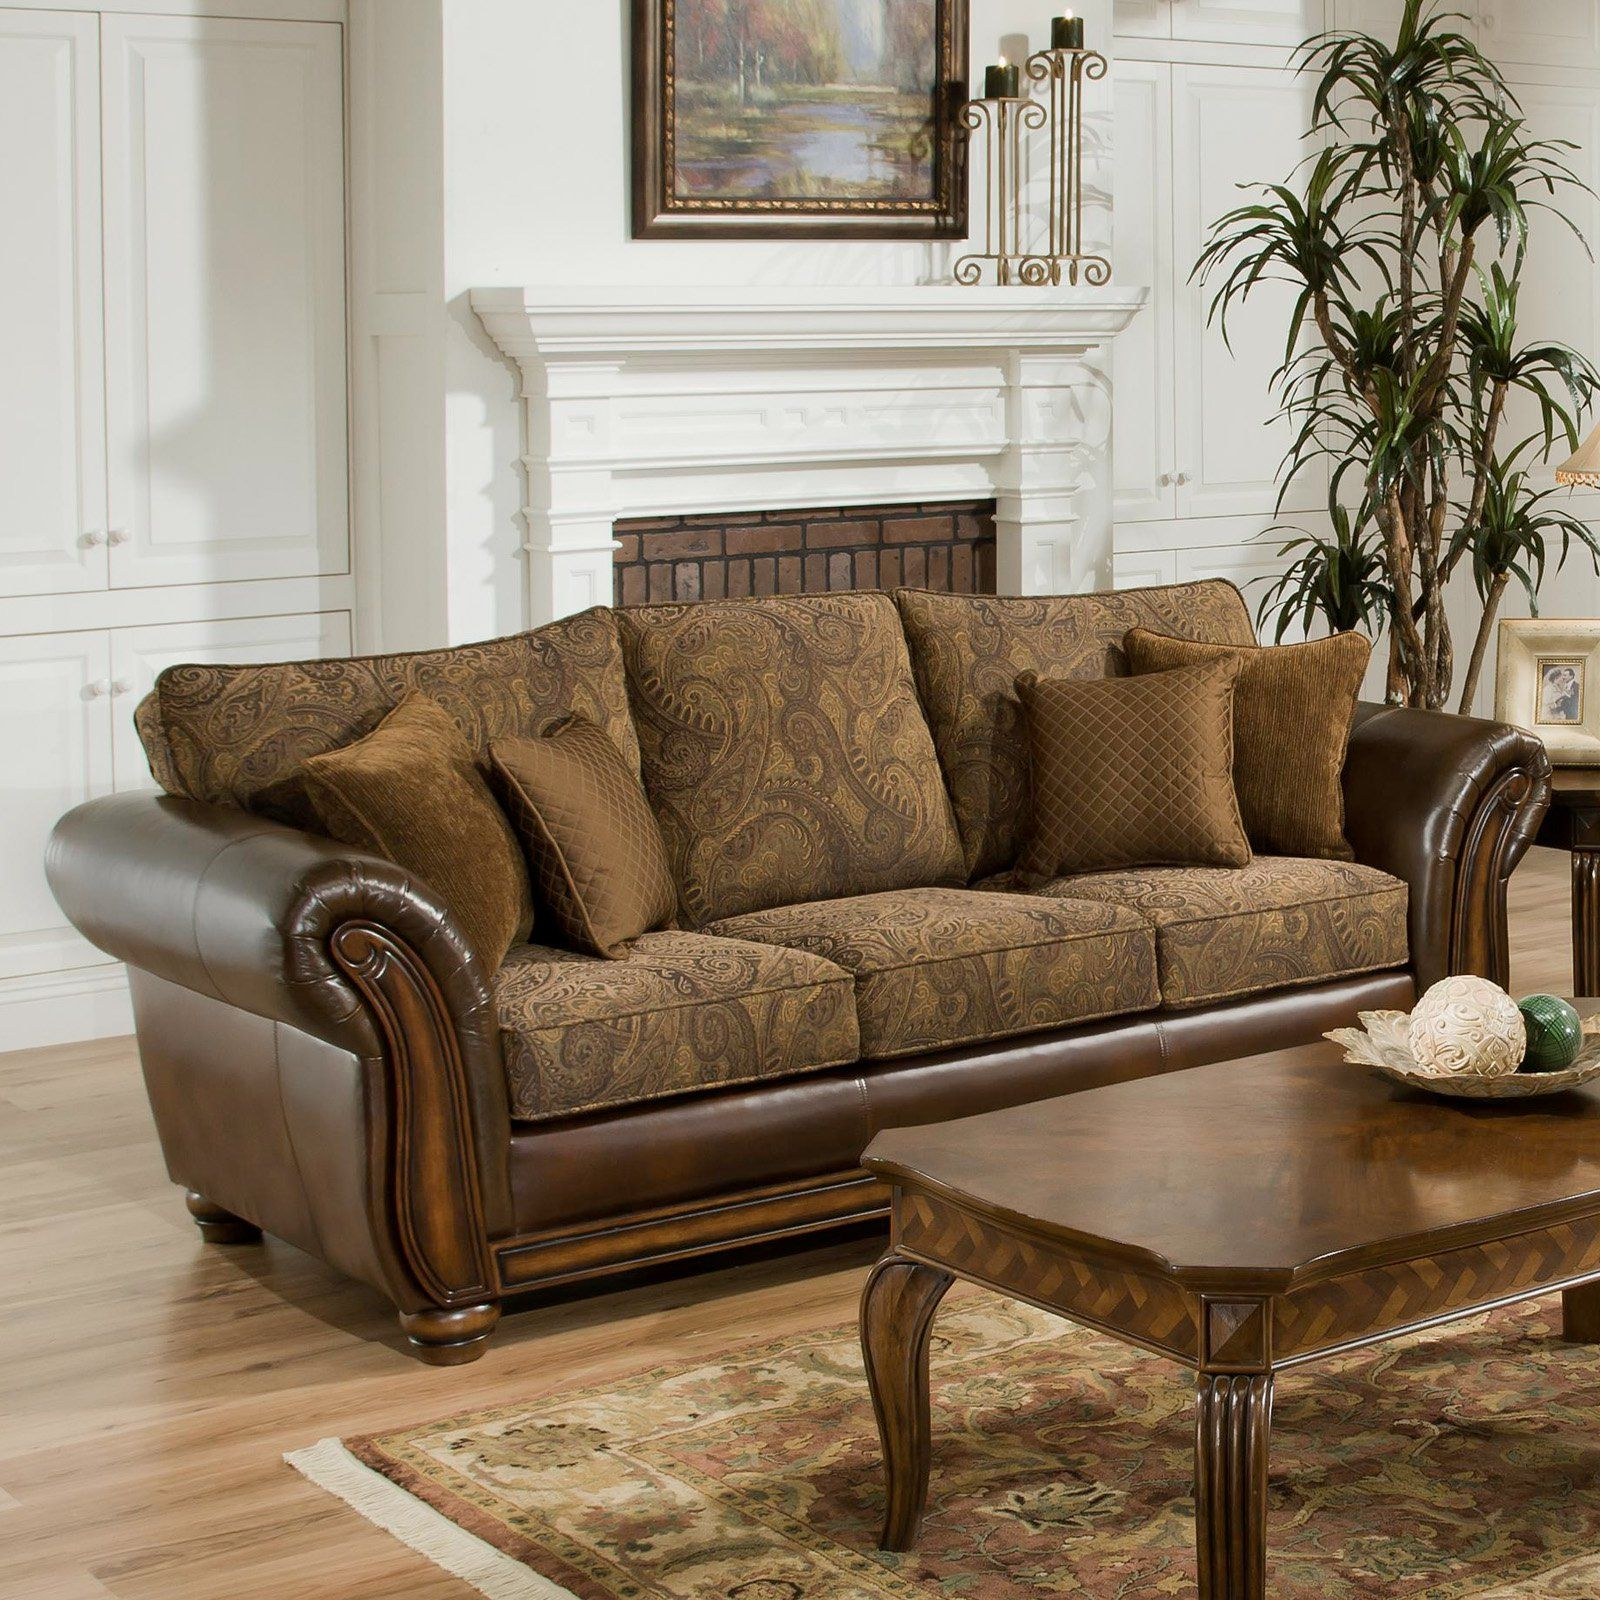 Have To Have It Simmons Zephyr Vintage Leather And Chenille Sofa With Accent Pillows